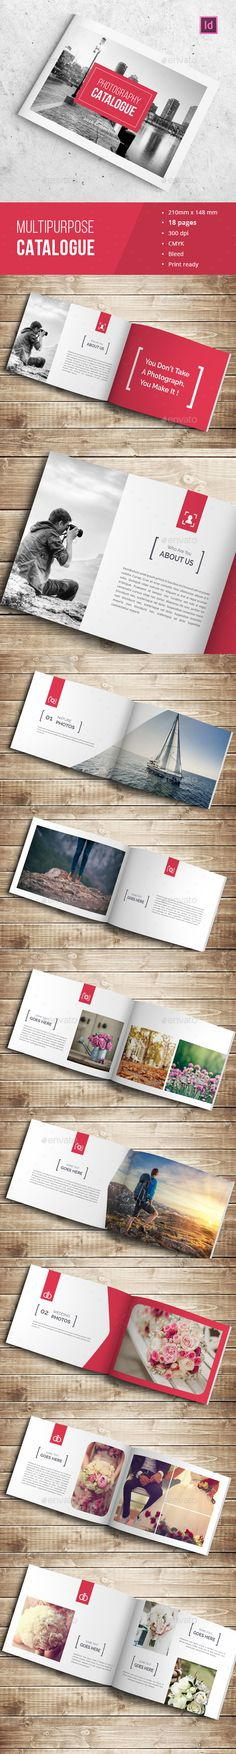 Photographer Portfolio Catalogue Template InDesign INDD. Download here: http://graphicriver.net/item/photographer_portfolio-catalogue/15004633?ref=ksioks